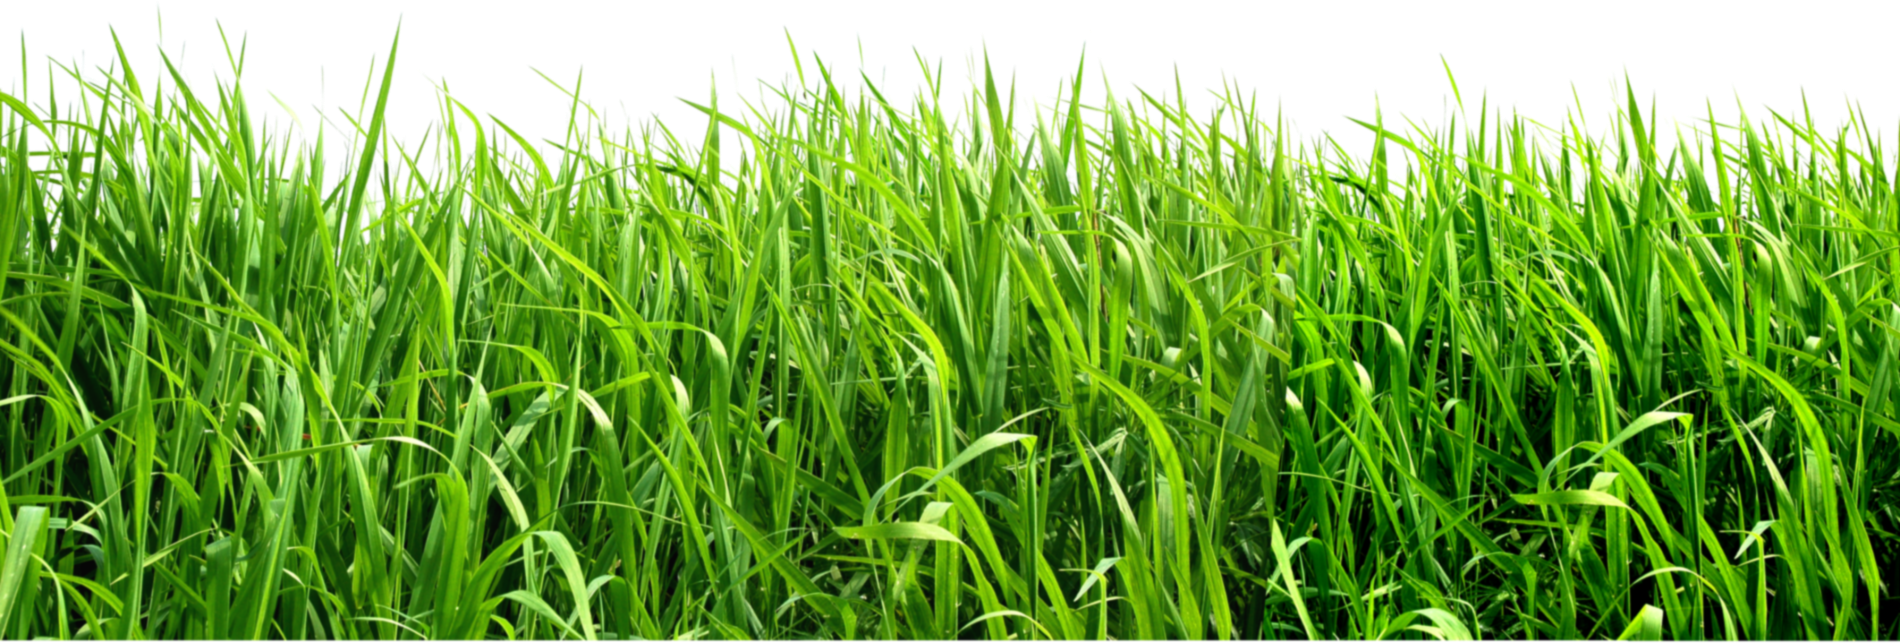 Dirt clipart grass. Png images pictures image